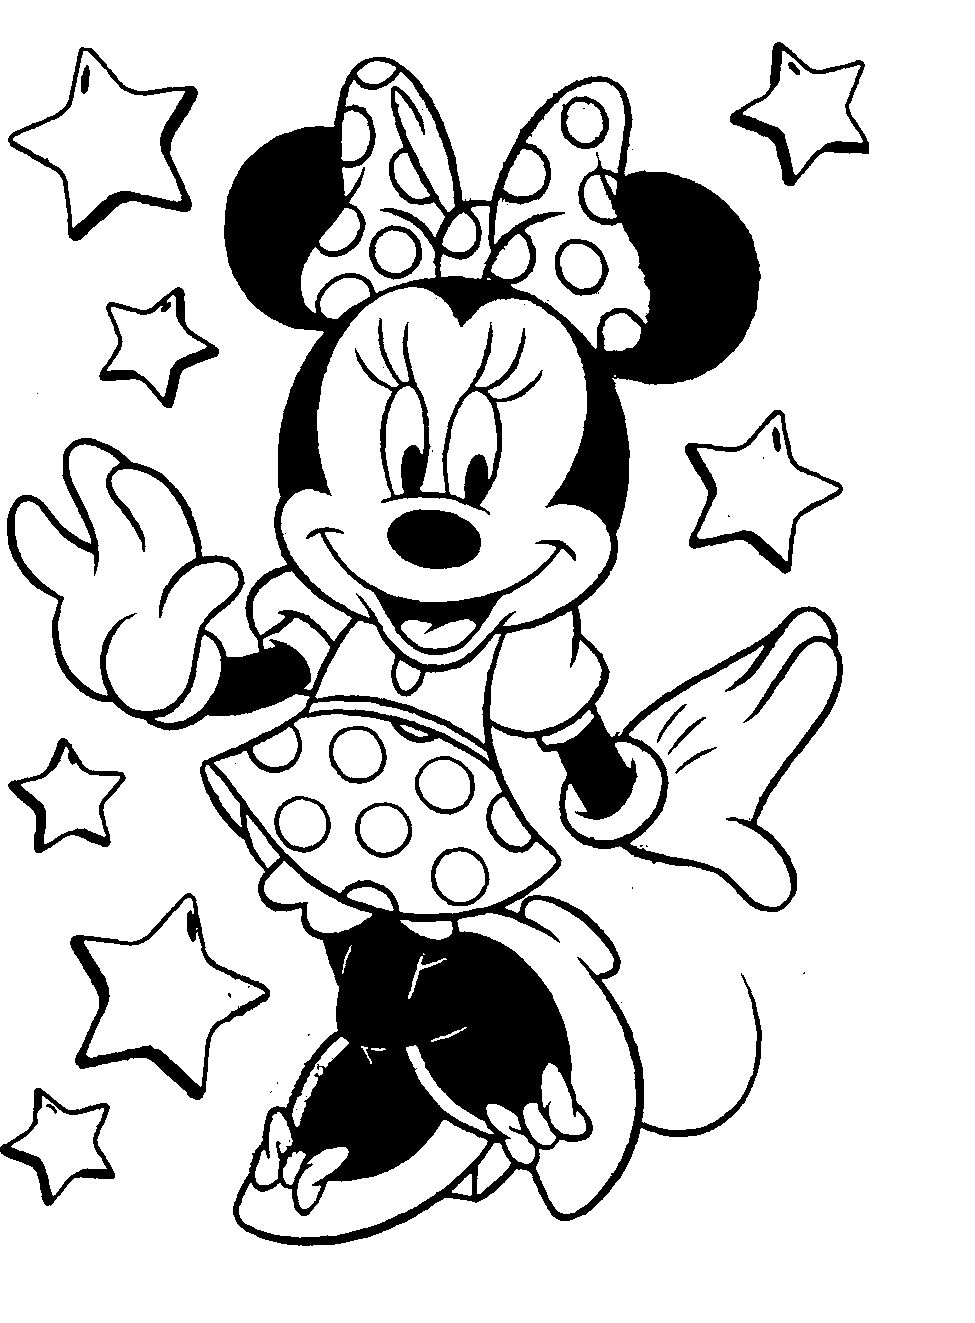 minnie mouse coloring book pages Collection-coloring pictures of minnie mouse Google Search 12-f